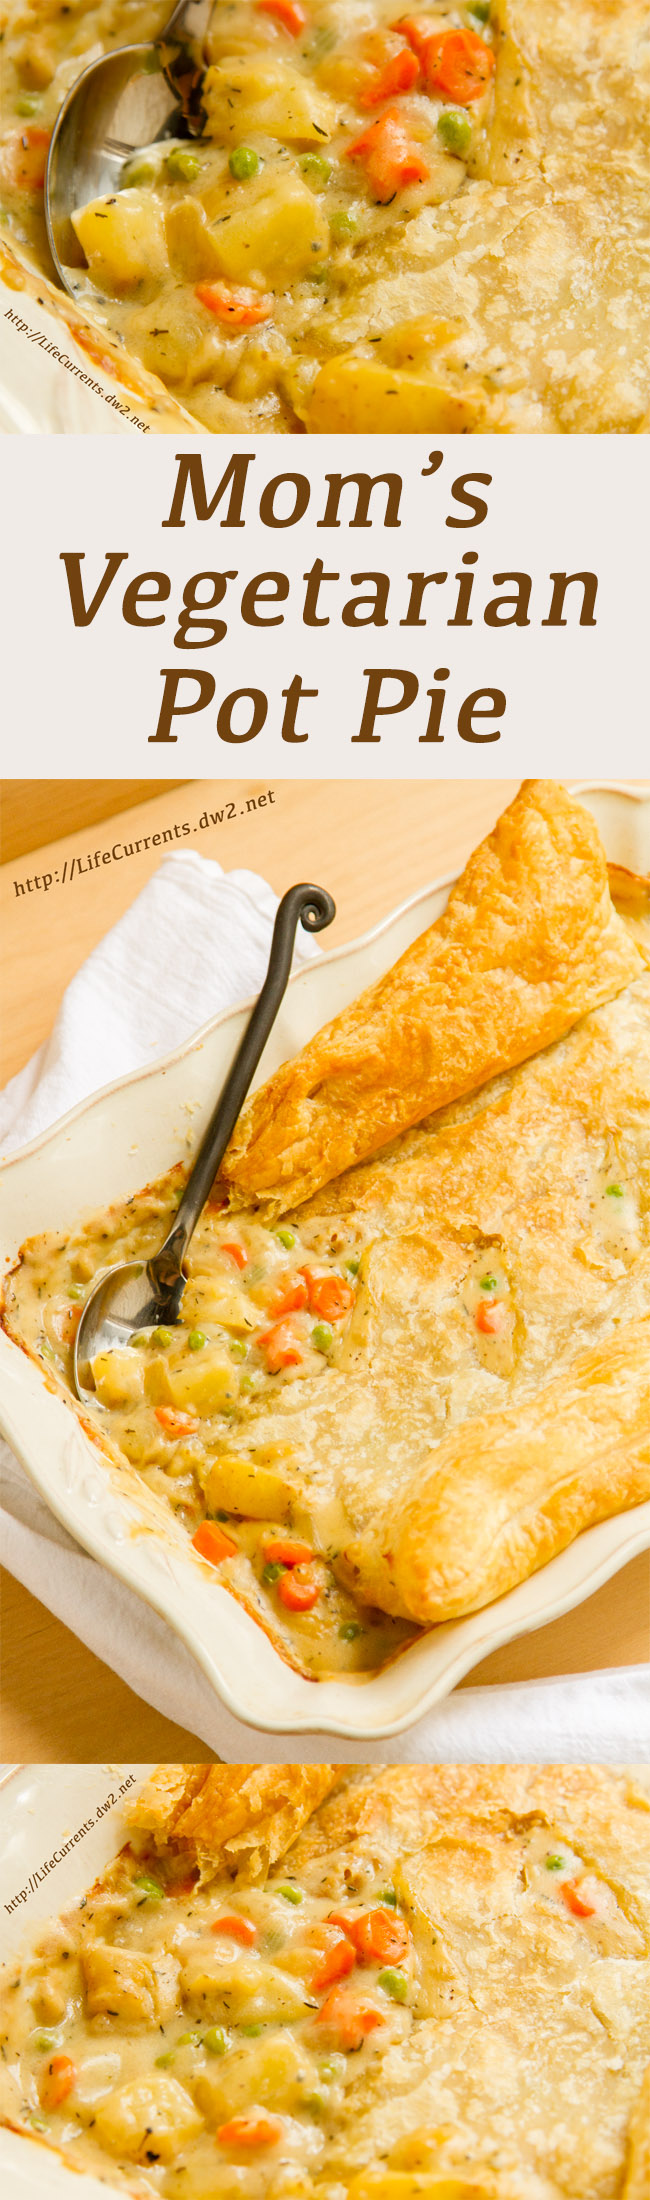 Mom's Vegetarian Pot Pie long pin for Pinterest with 3 images and a title